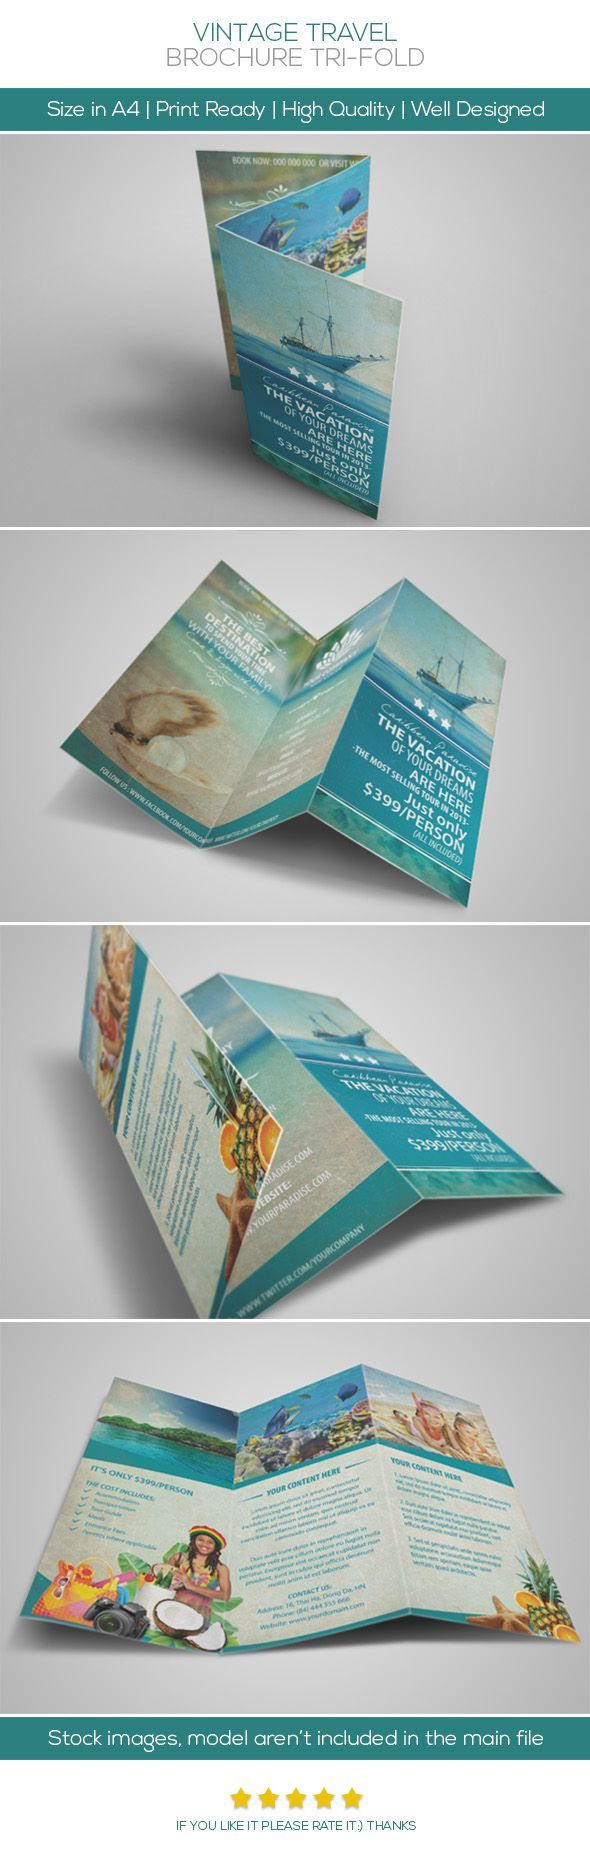 25 Best Trifold Brochure In Adobe Indesign Images On Pinterest